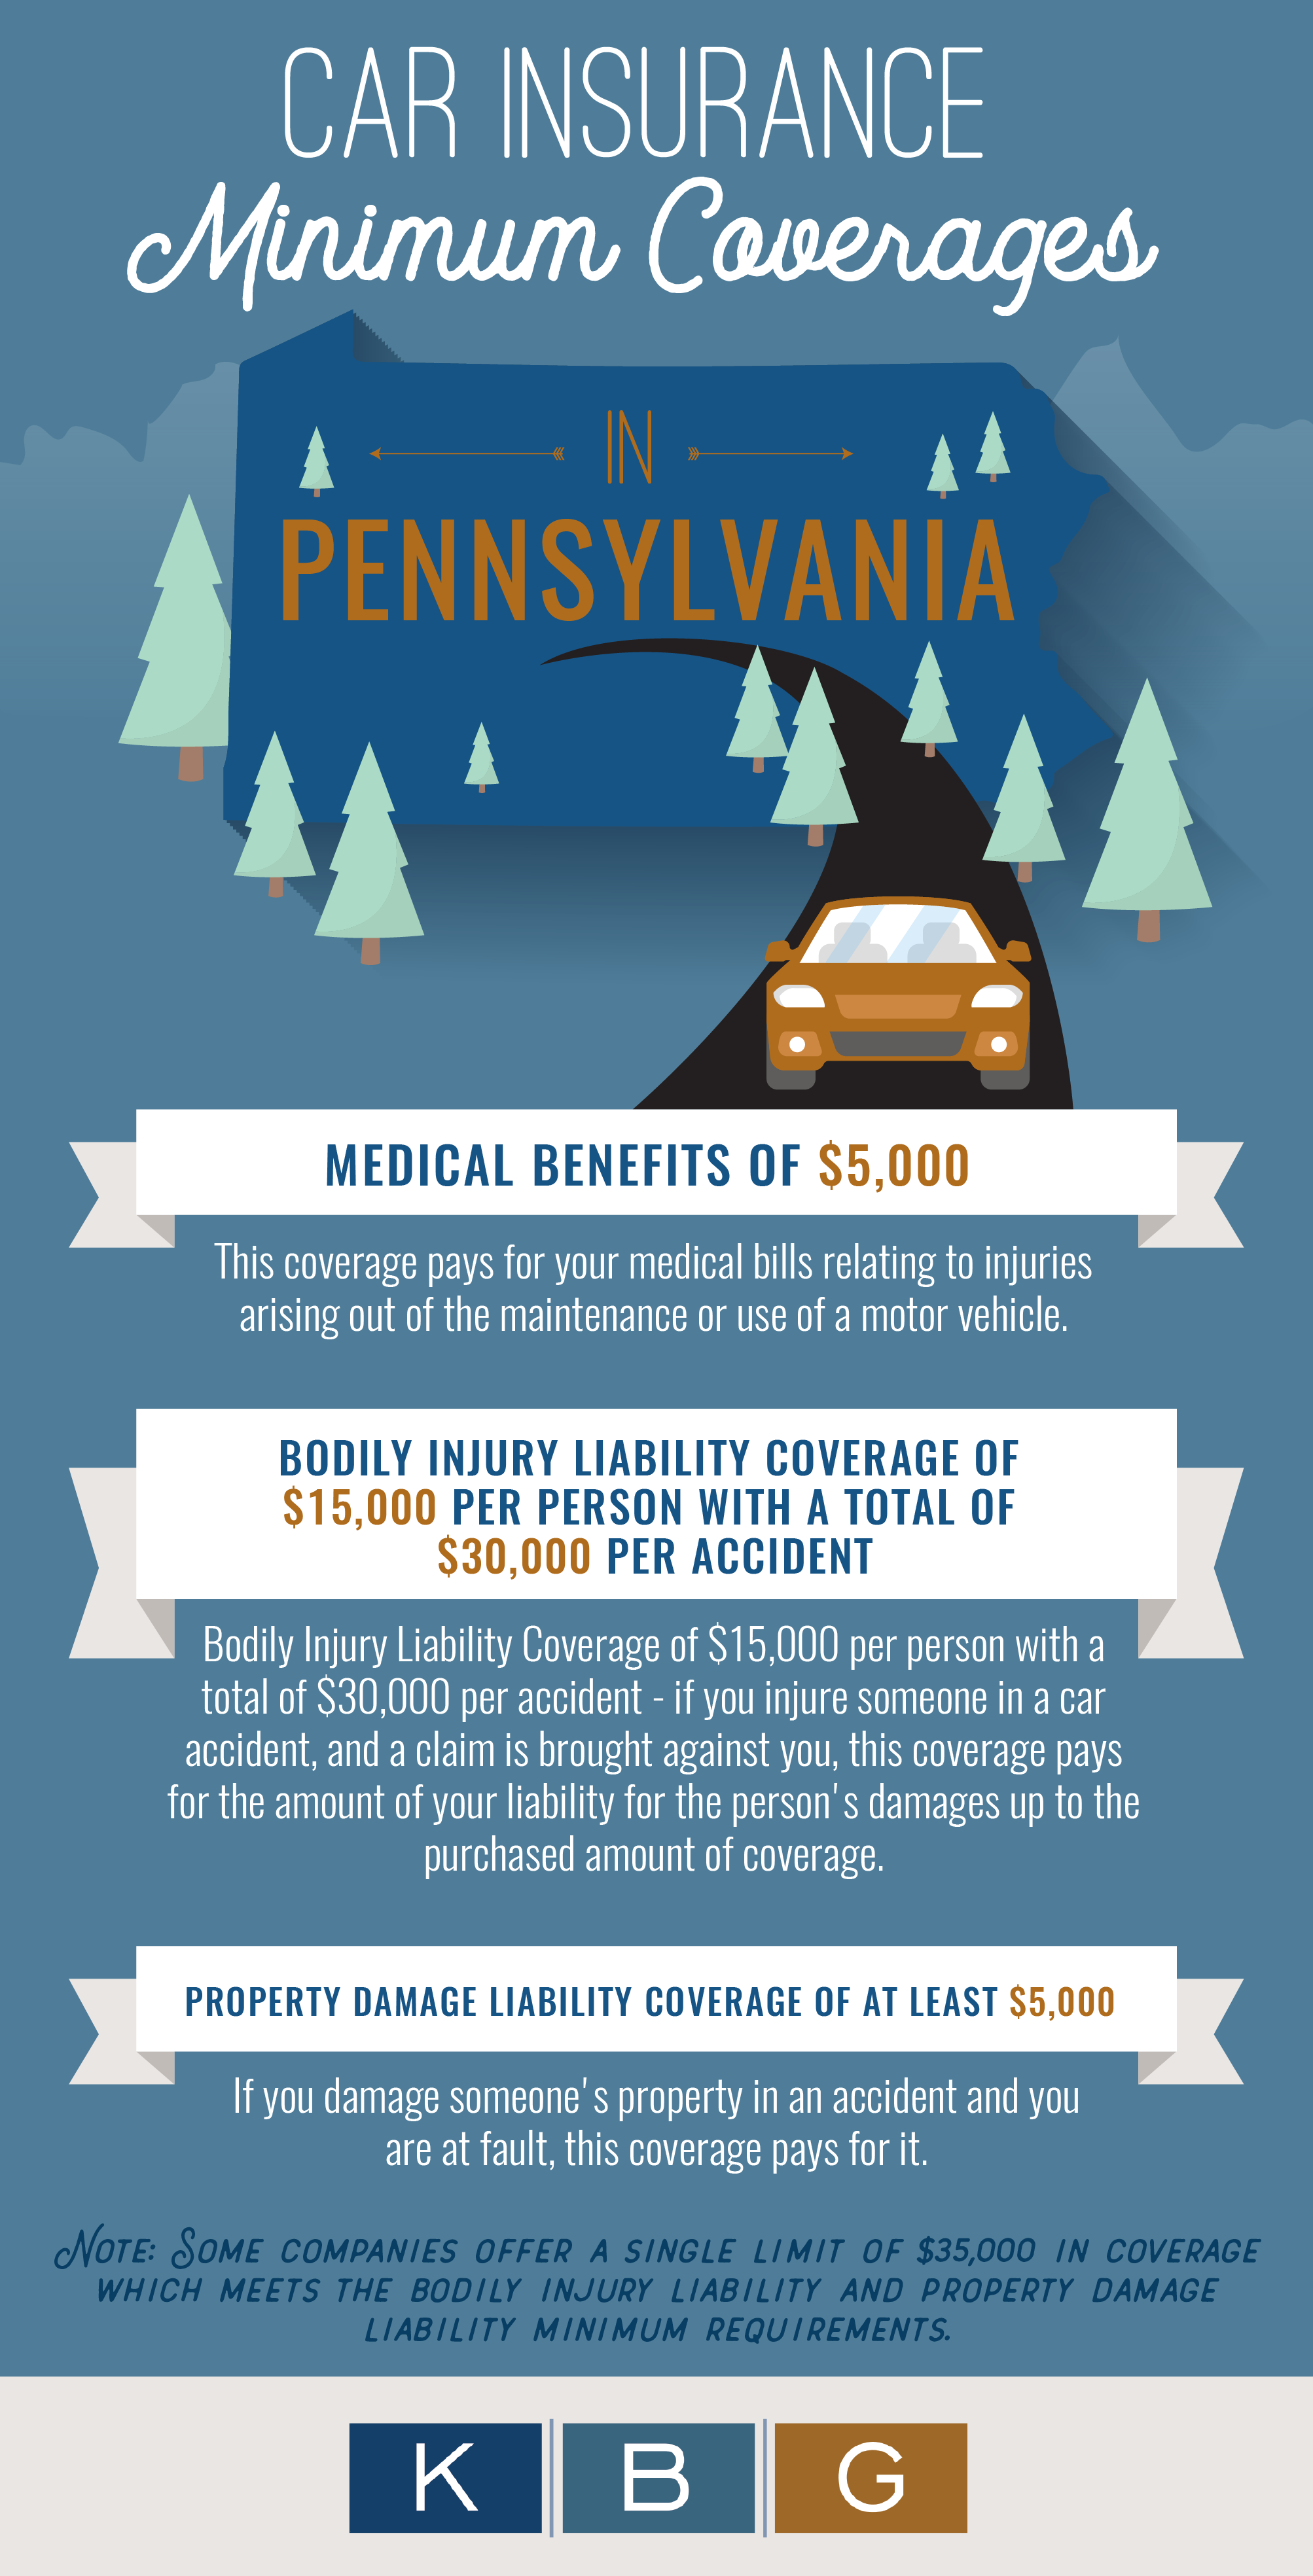 Car Insurance Minimum Coverages in PA